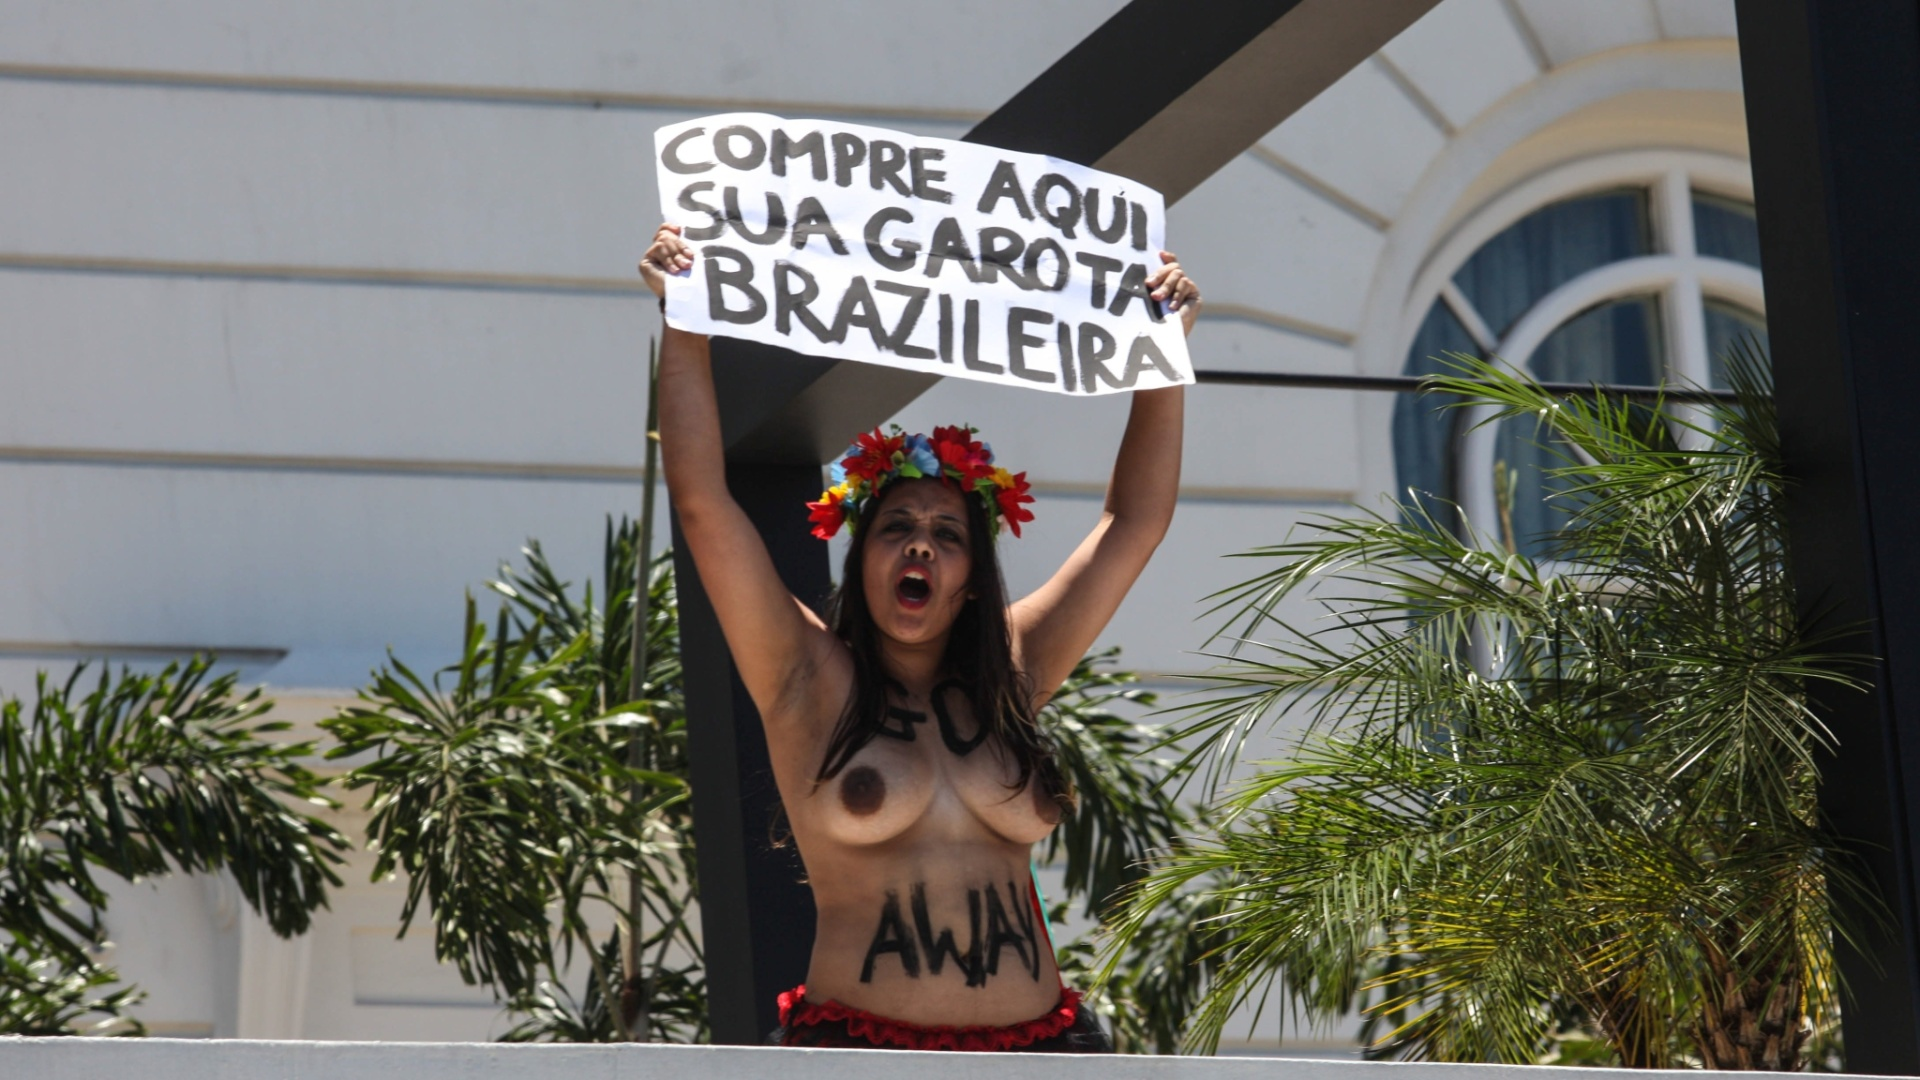 22.nov.2012 - Ativista do grupo Femen Brazil protesta em frente ao hotel Copacabana Palace, na zona sul do Rio de Janeiro, contra o turismo sexual 